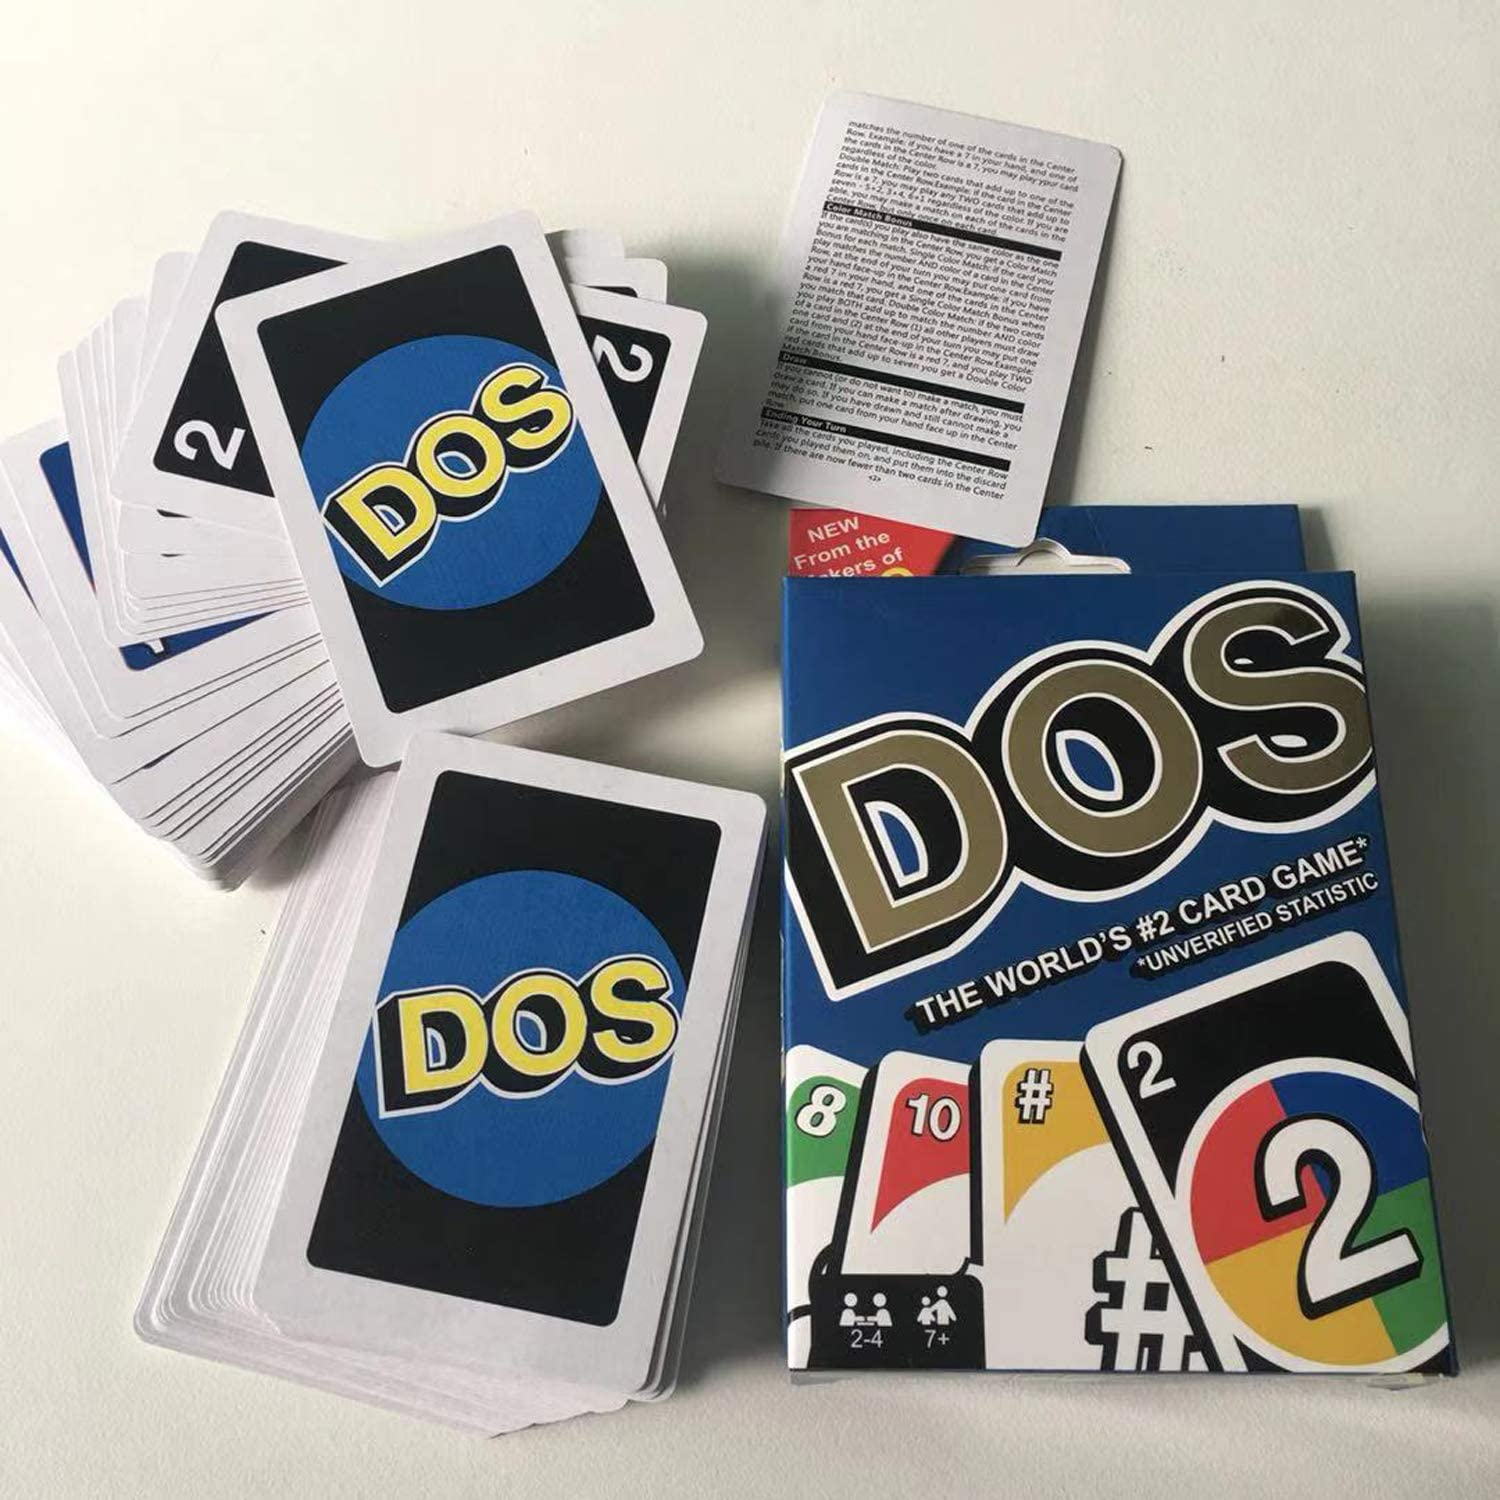 DOS-From the Makers of UNO